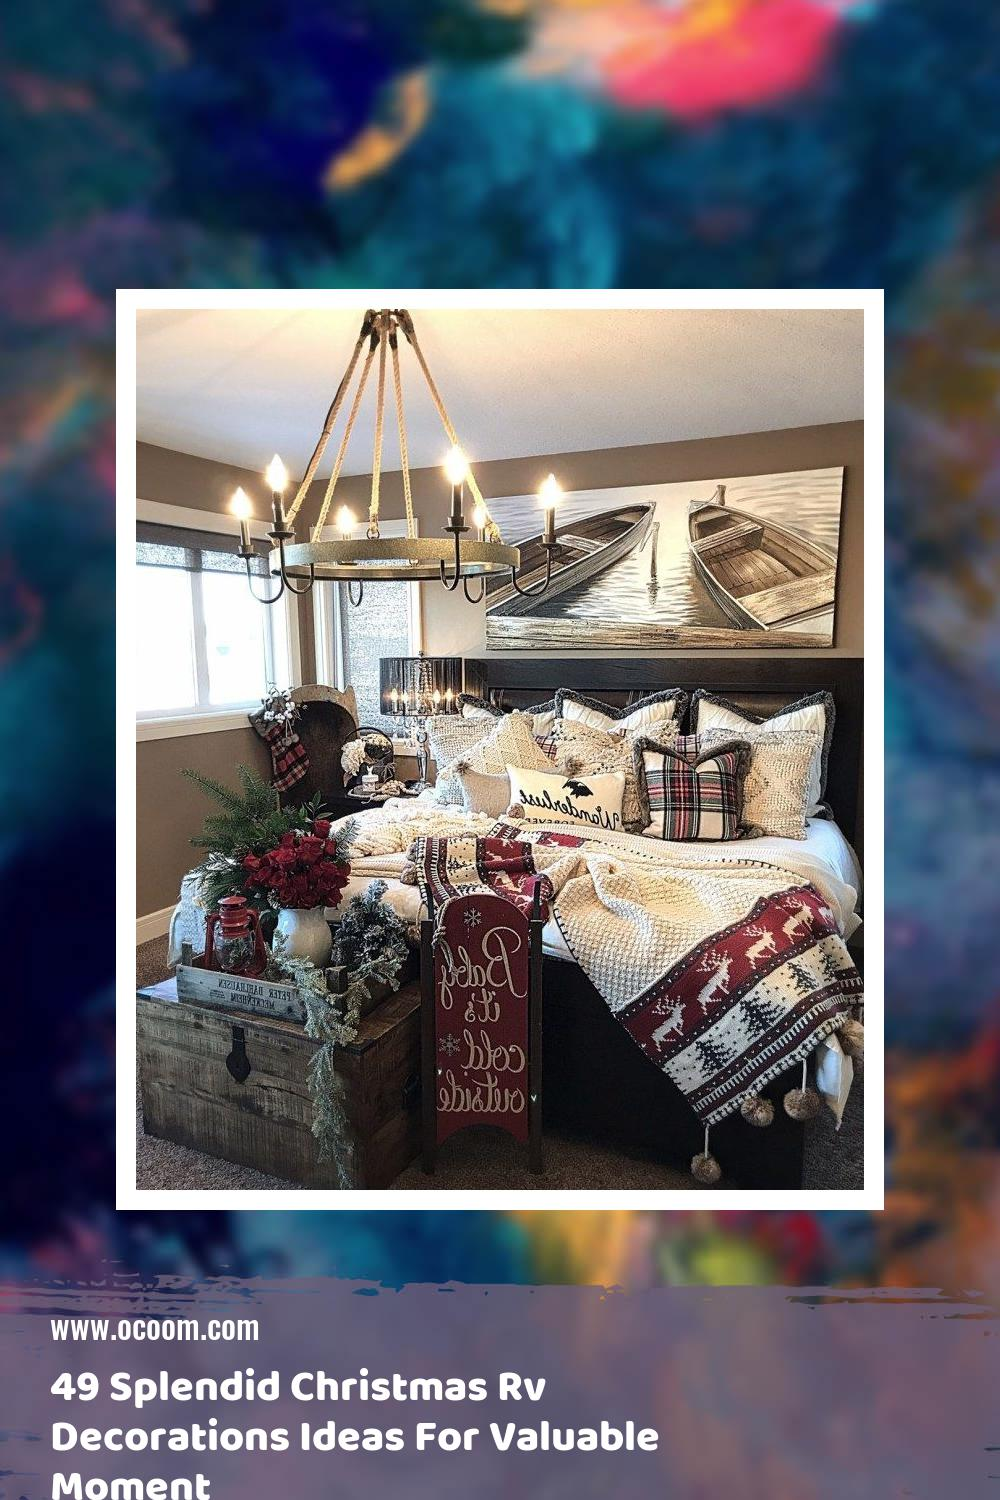 49 Splendid Christmas Rv Decorations Ideas For Valuable Moment 32